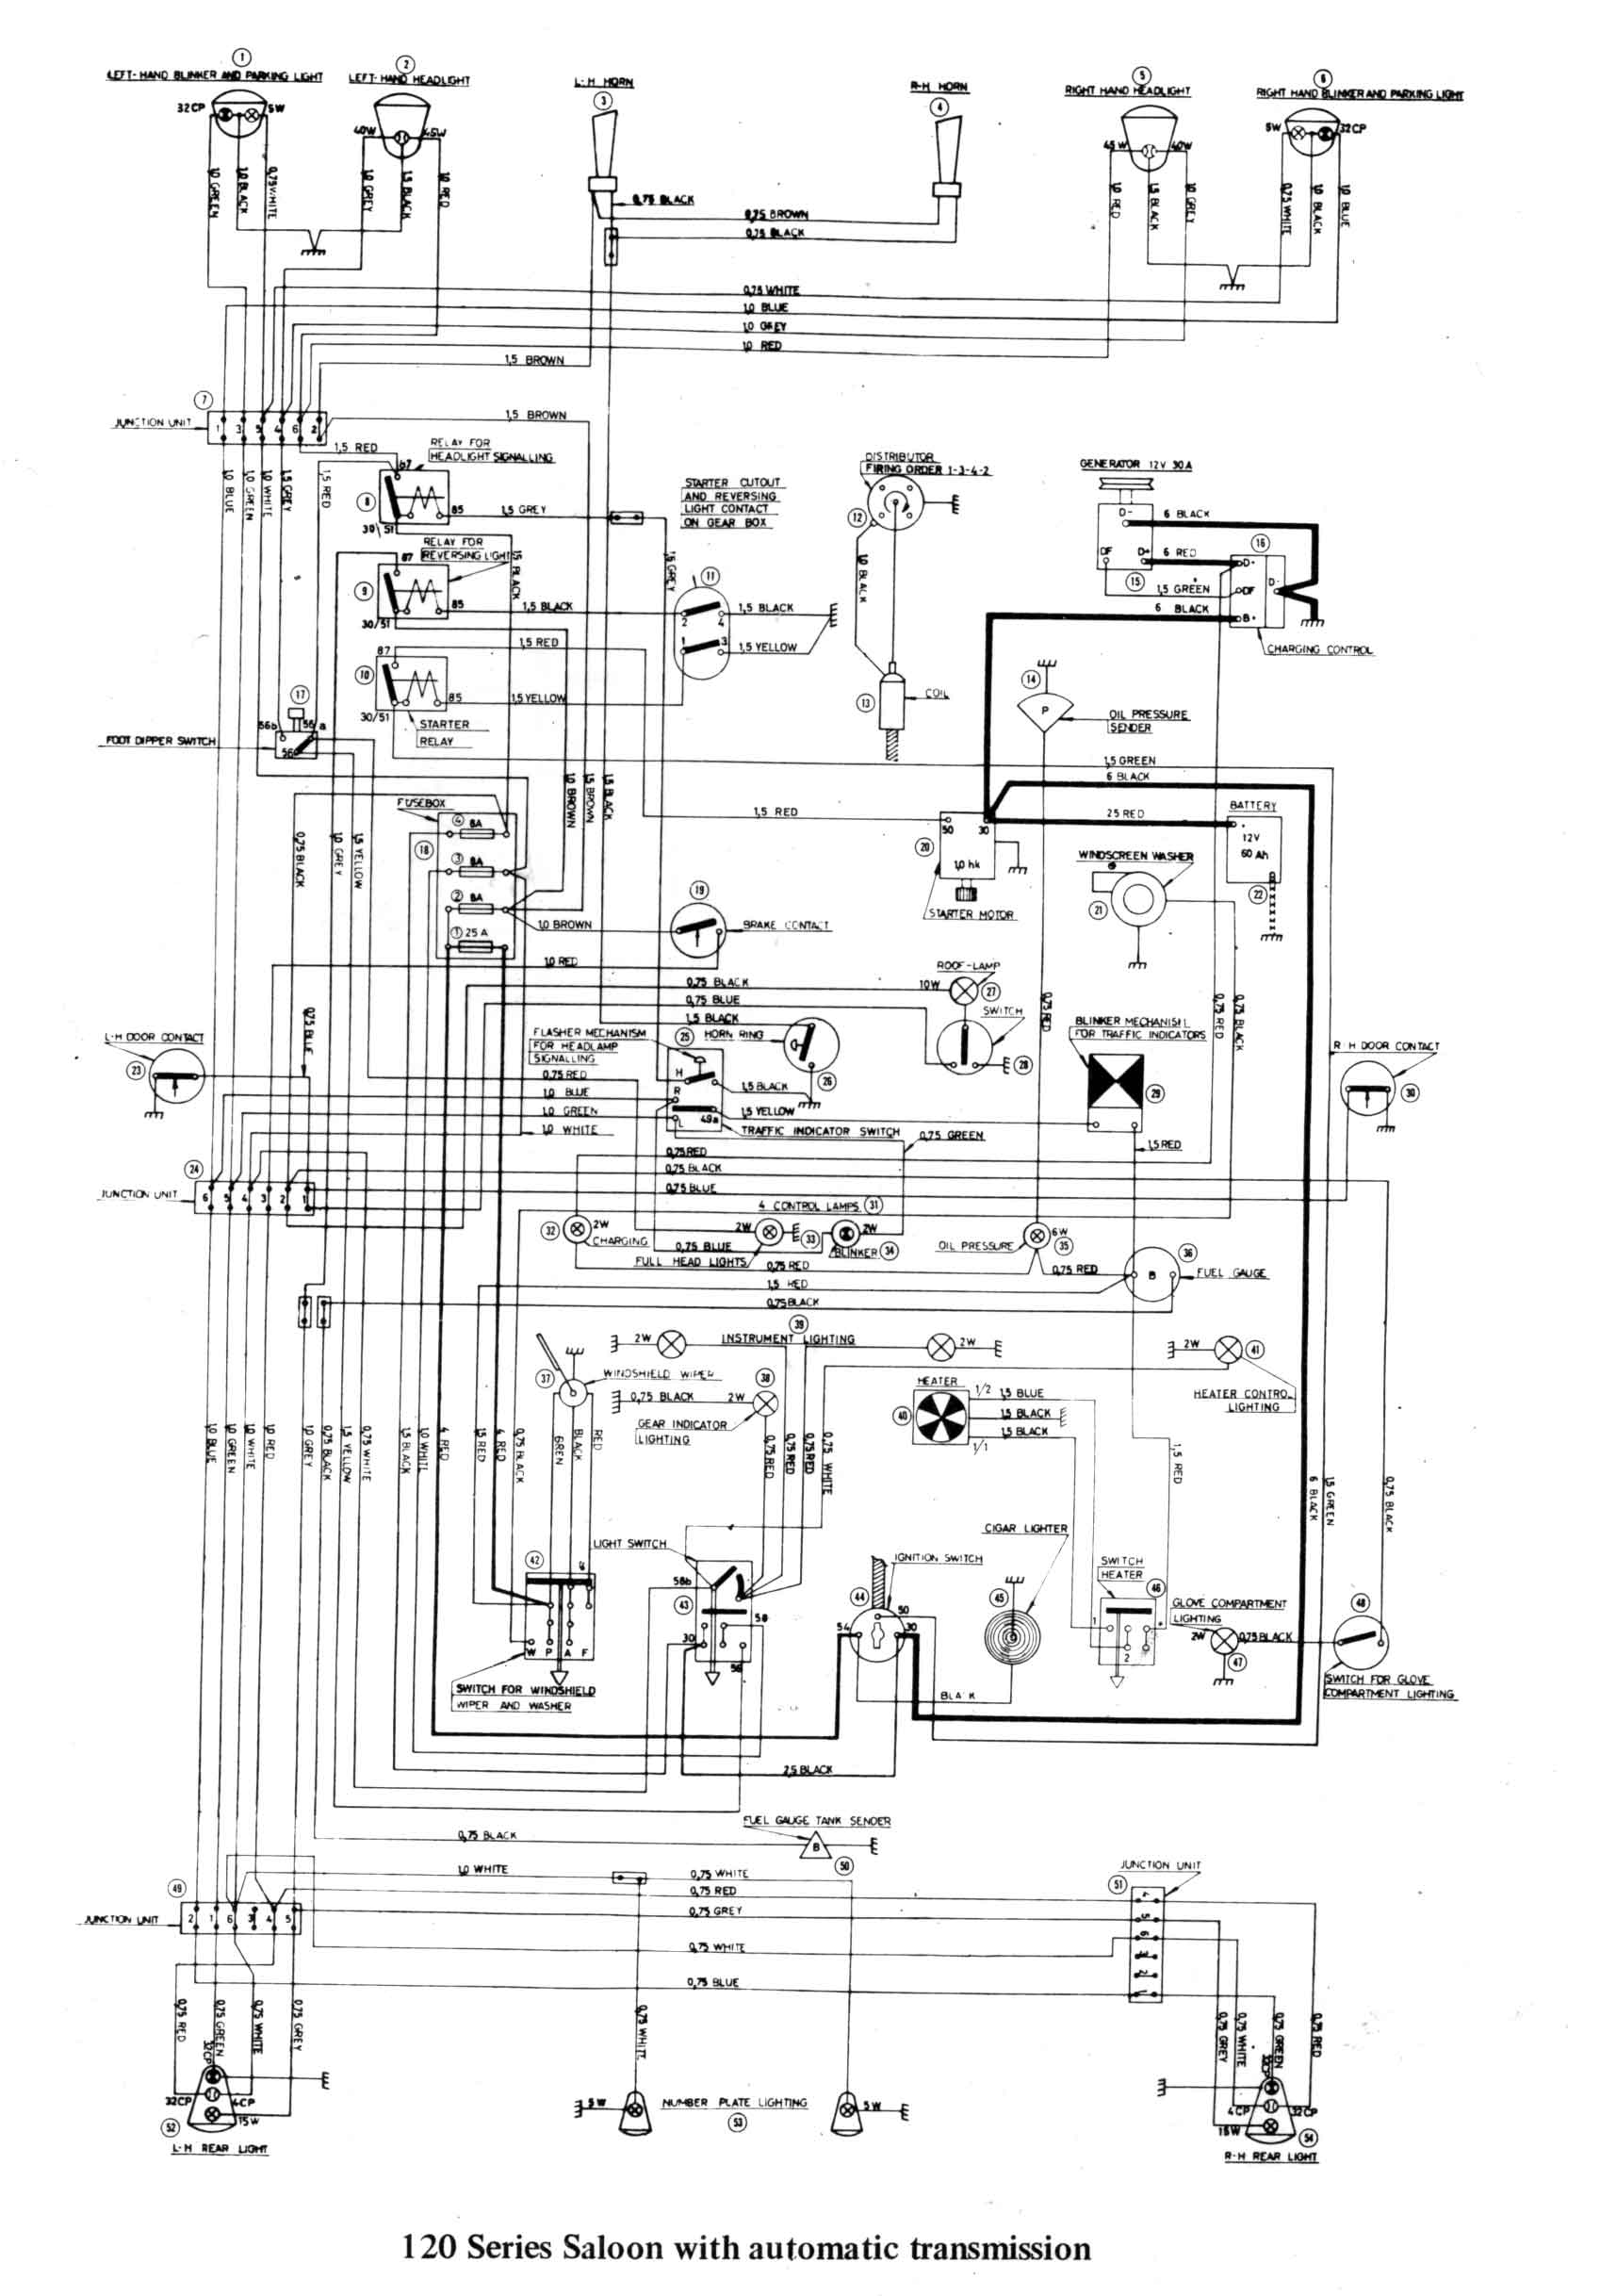 volvo 850 speaker wiring wiring library Montana Mountaineer Wiring Diagram 1994 volvo 850 wiring diagram circuit diagram symbols \\u2022 volvo 850 engine diagram volvo 850